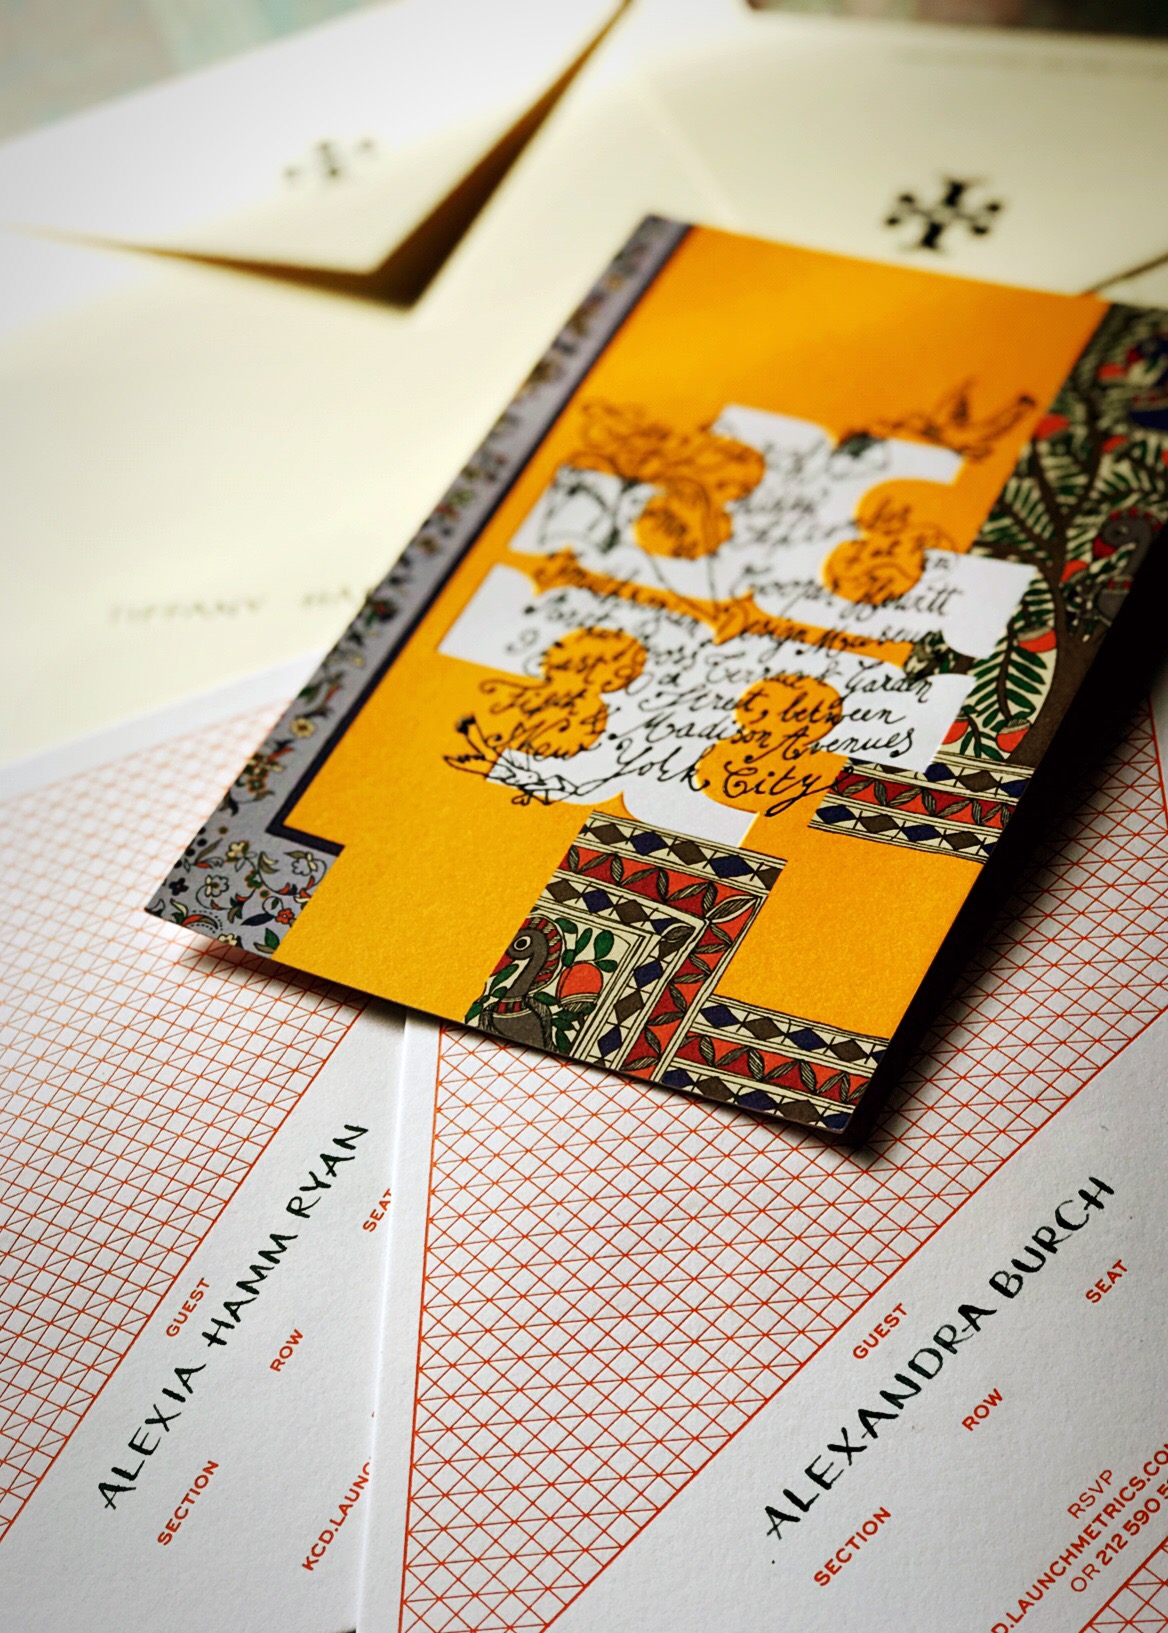 Tory Burch SS19 Invitation